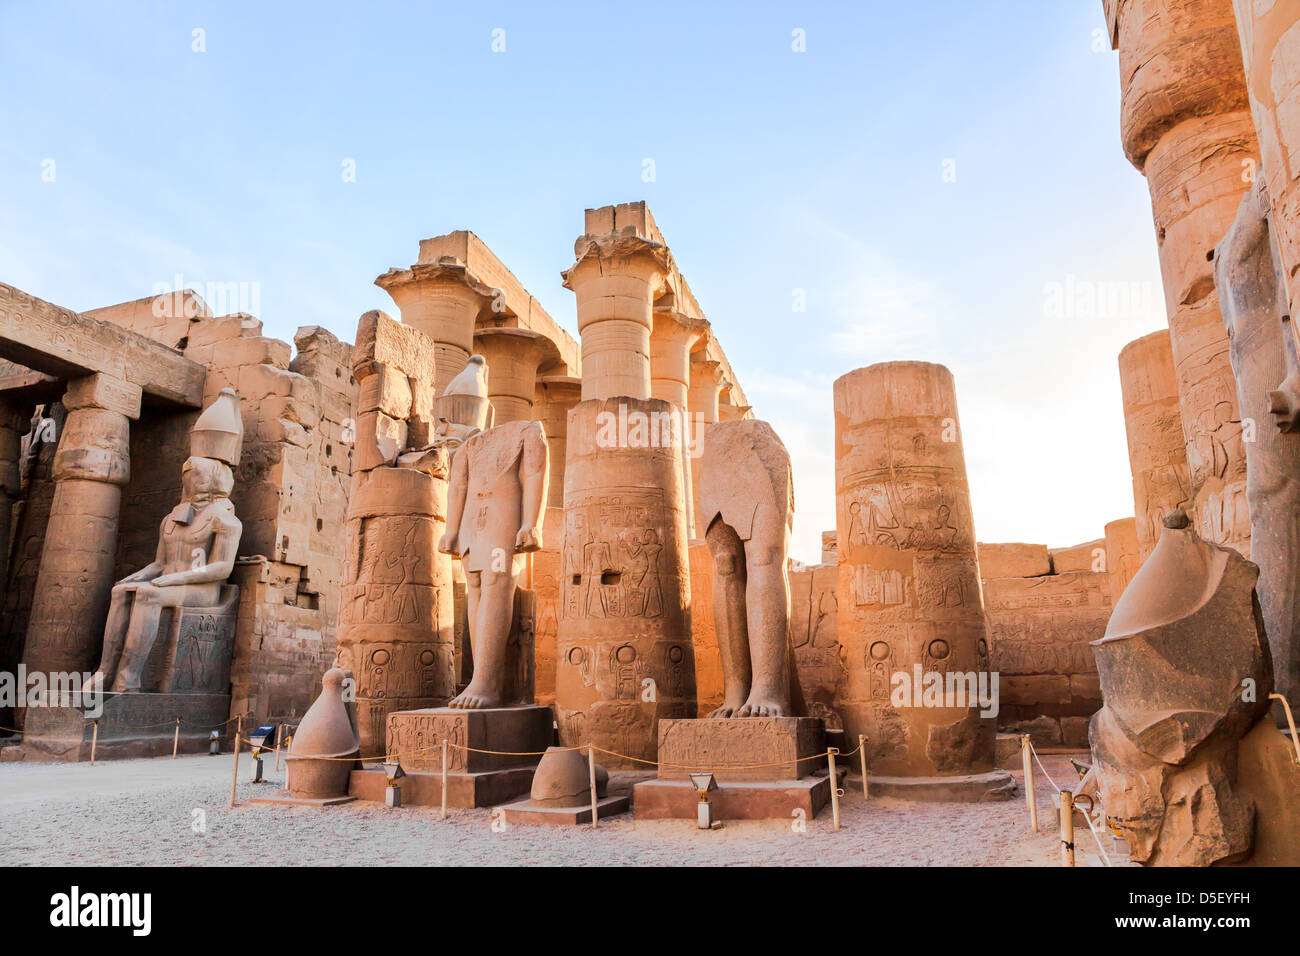 statue of pharaoh in luxor temple, luxor, egypt - Stock Image